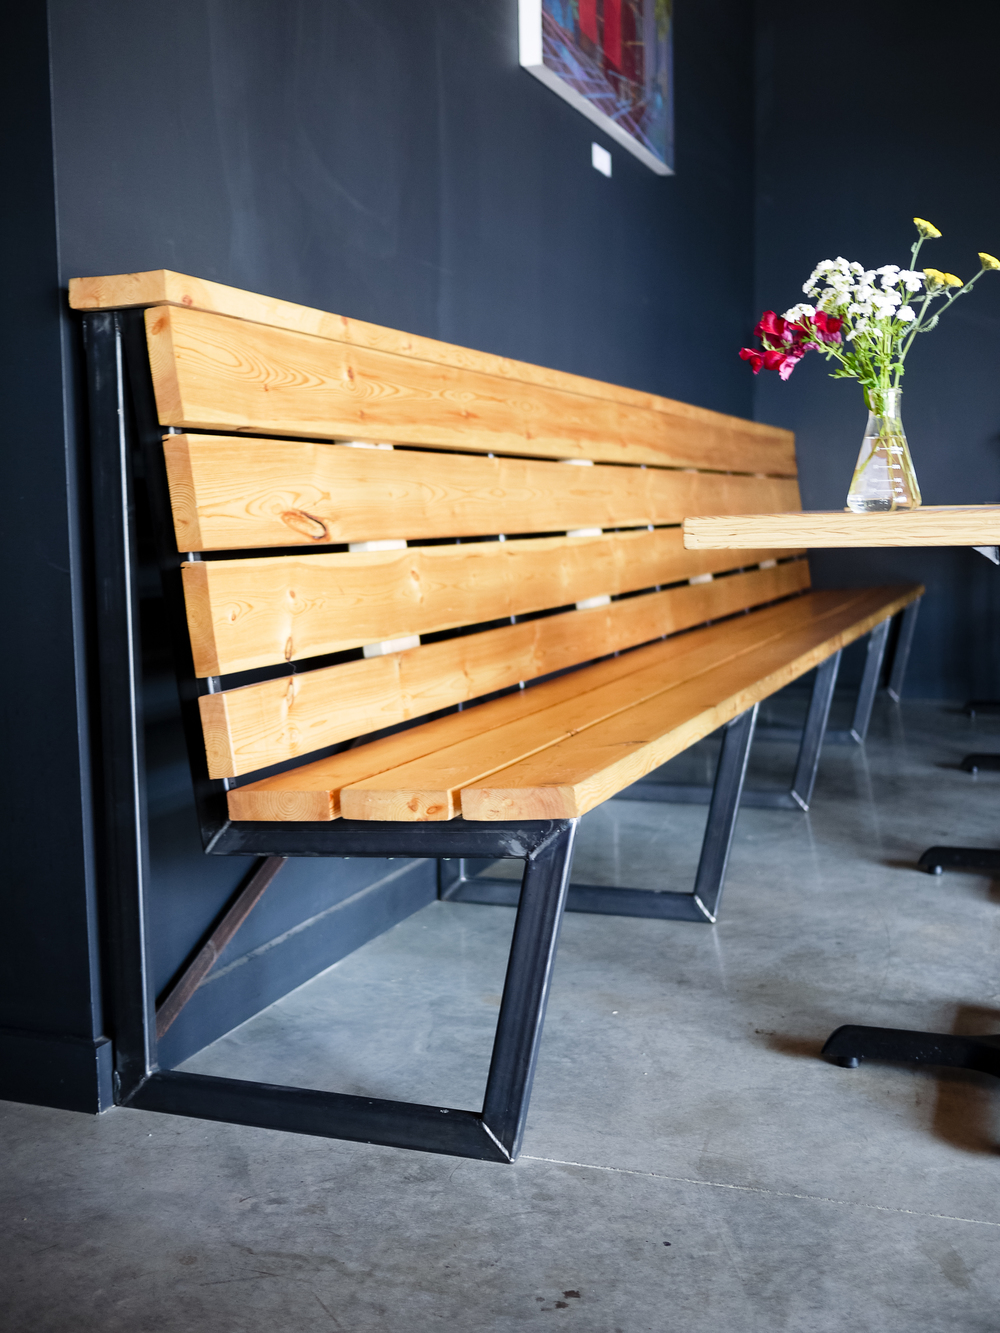 Bench frames at Cardinal, by Clutch